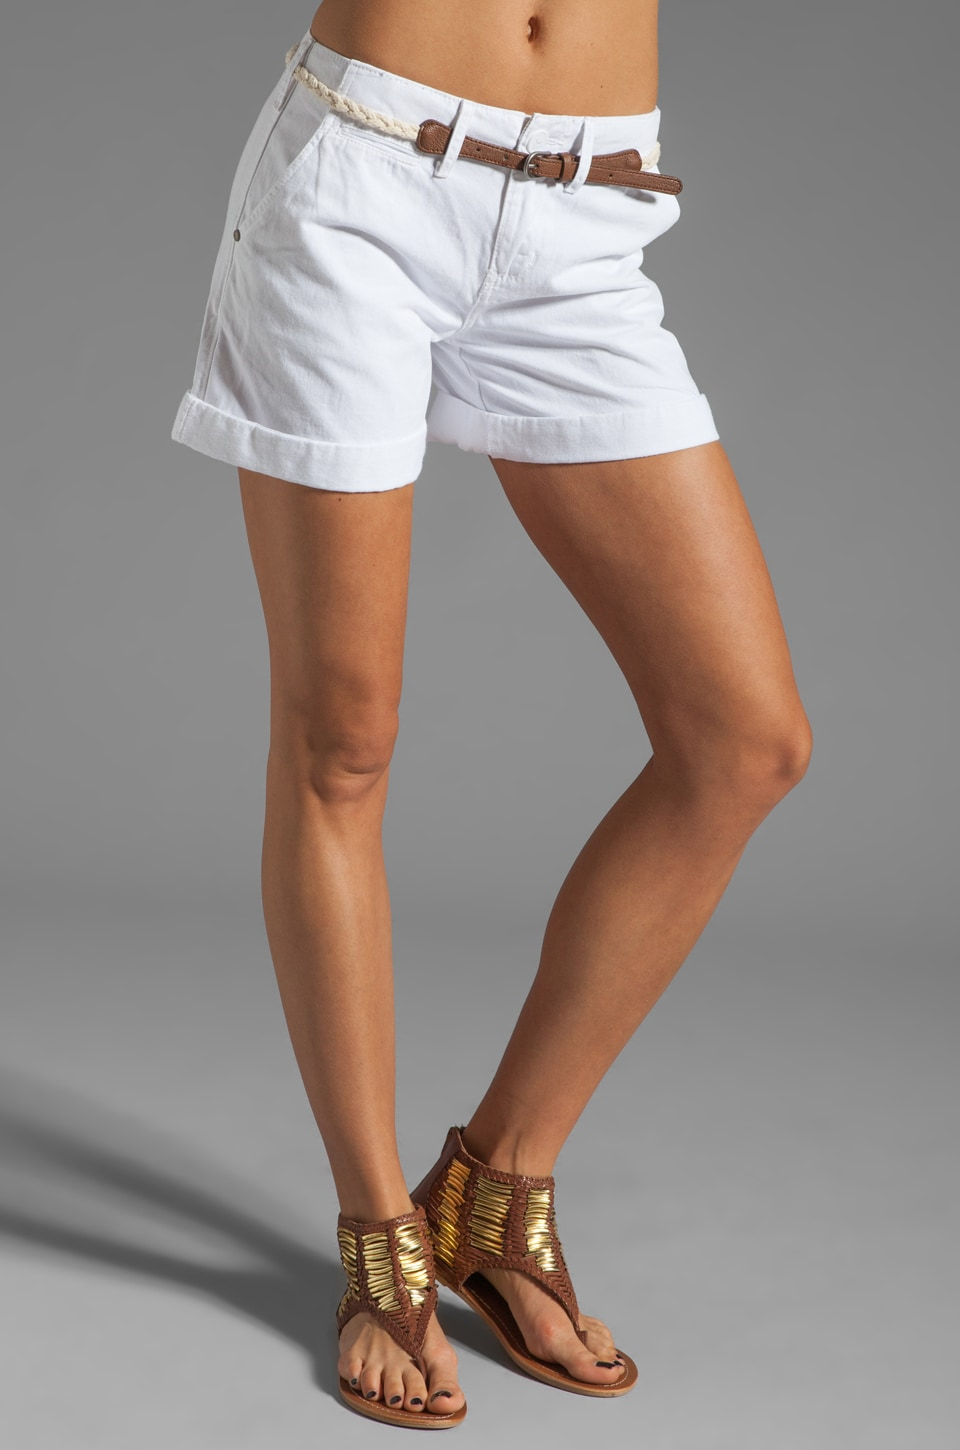 Sanctuary Liberty Roll Short with Belt in White